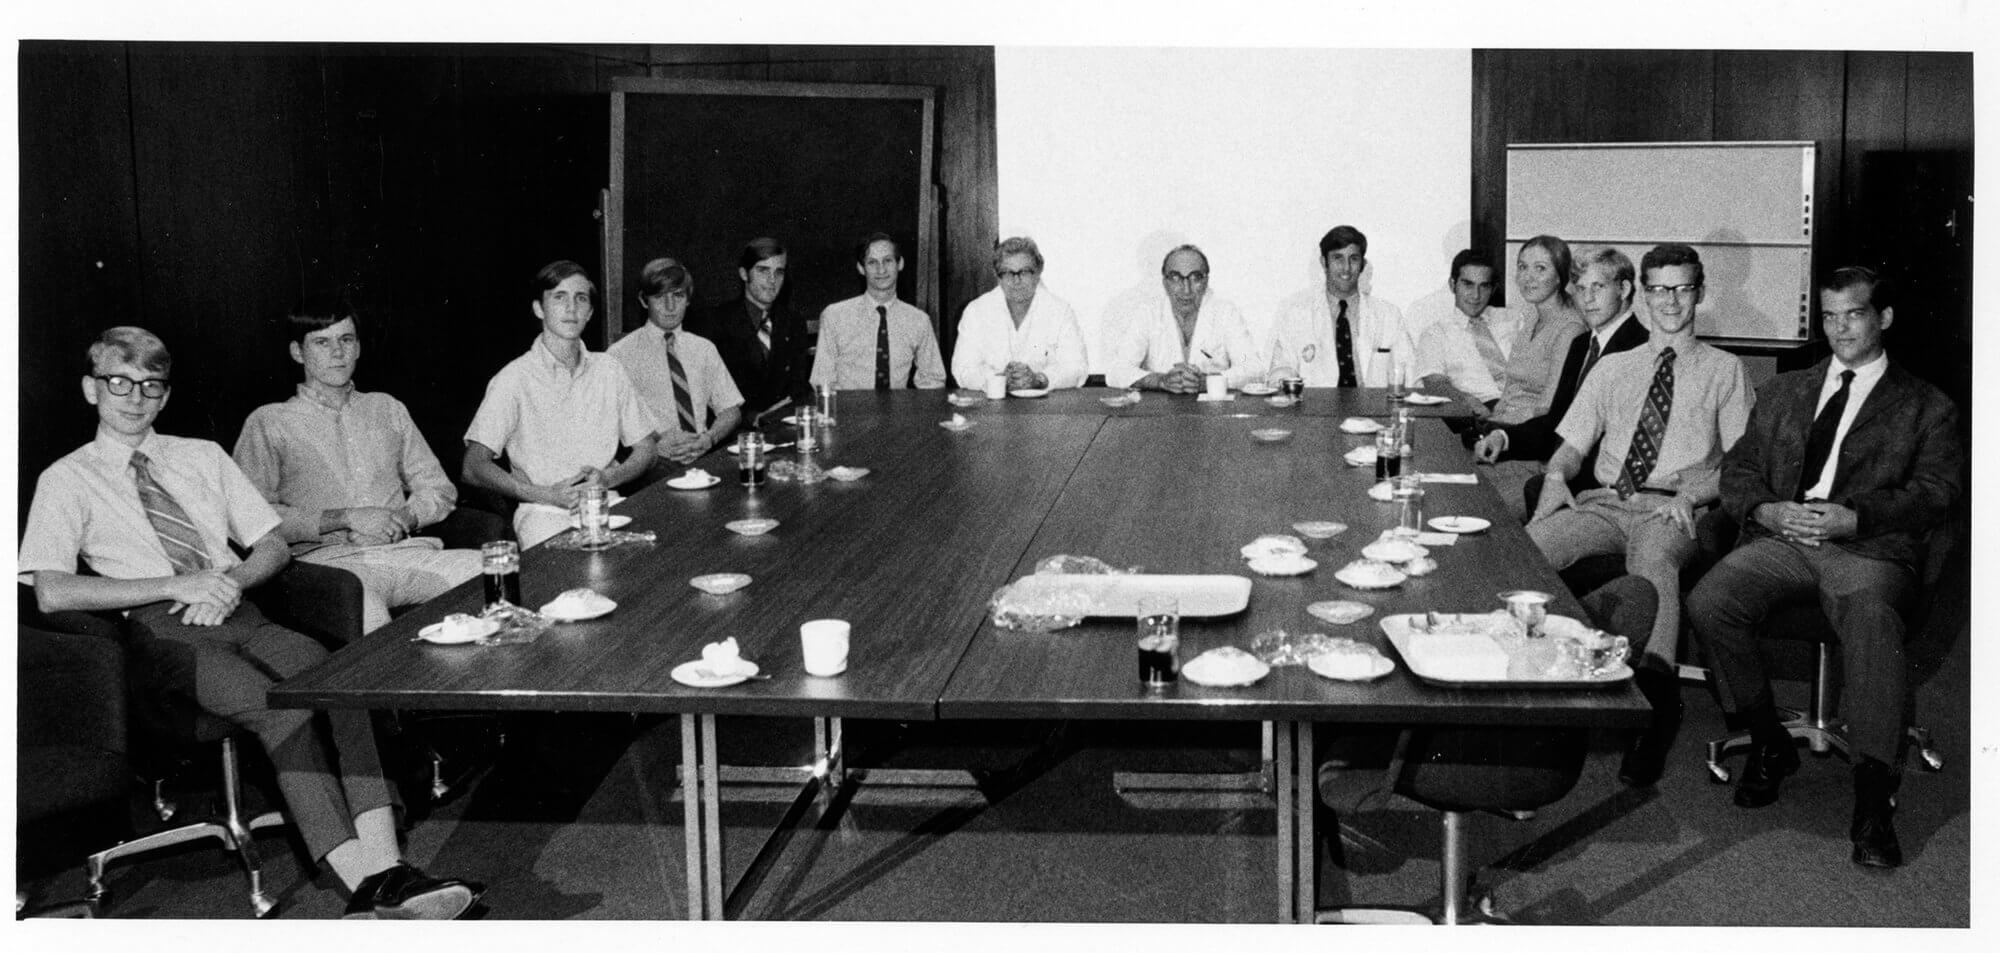 Michael E. DeBakey, M.D., center, surrounded by students in the summer surgery program in 1970.